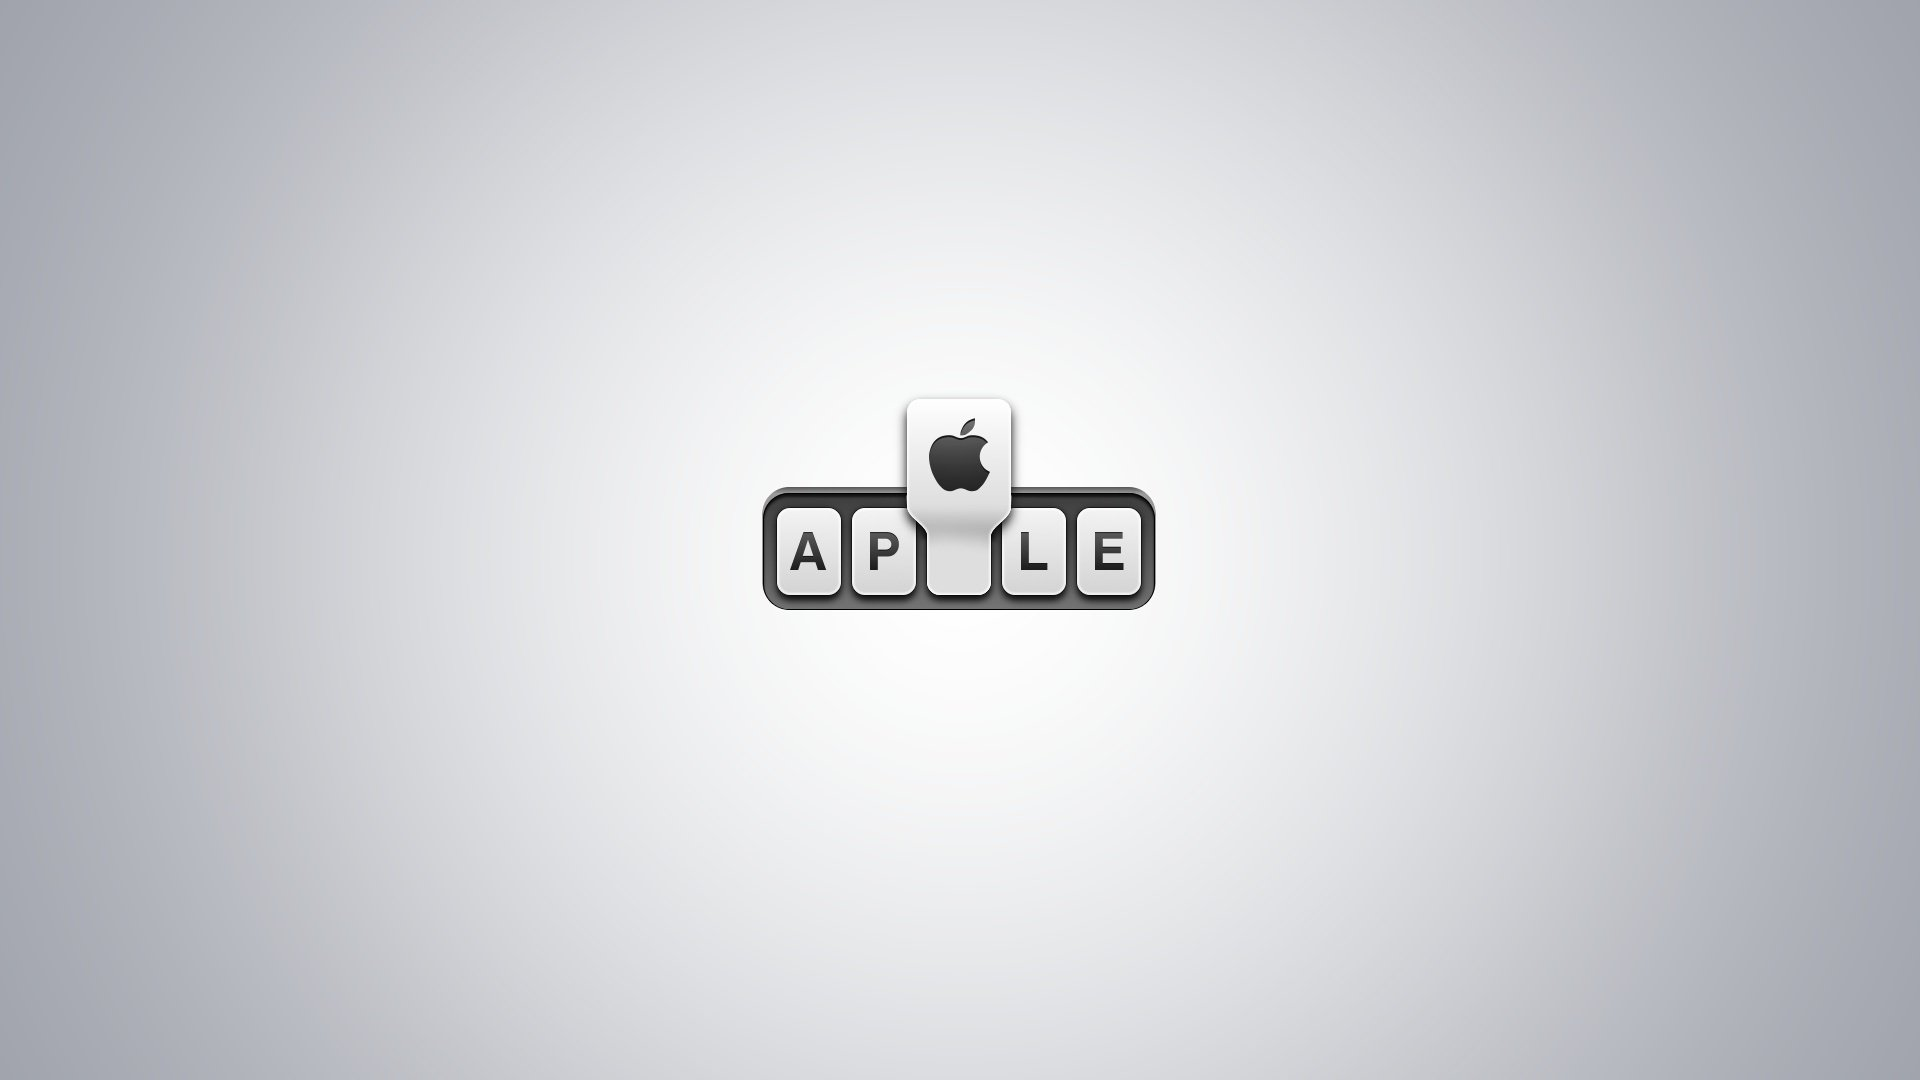 free download apple wallpaper id 296502 full hd 1080p for computer